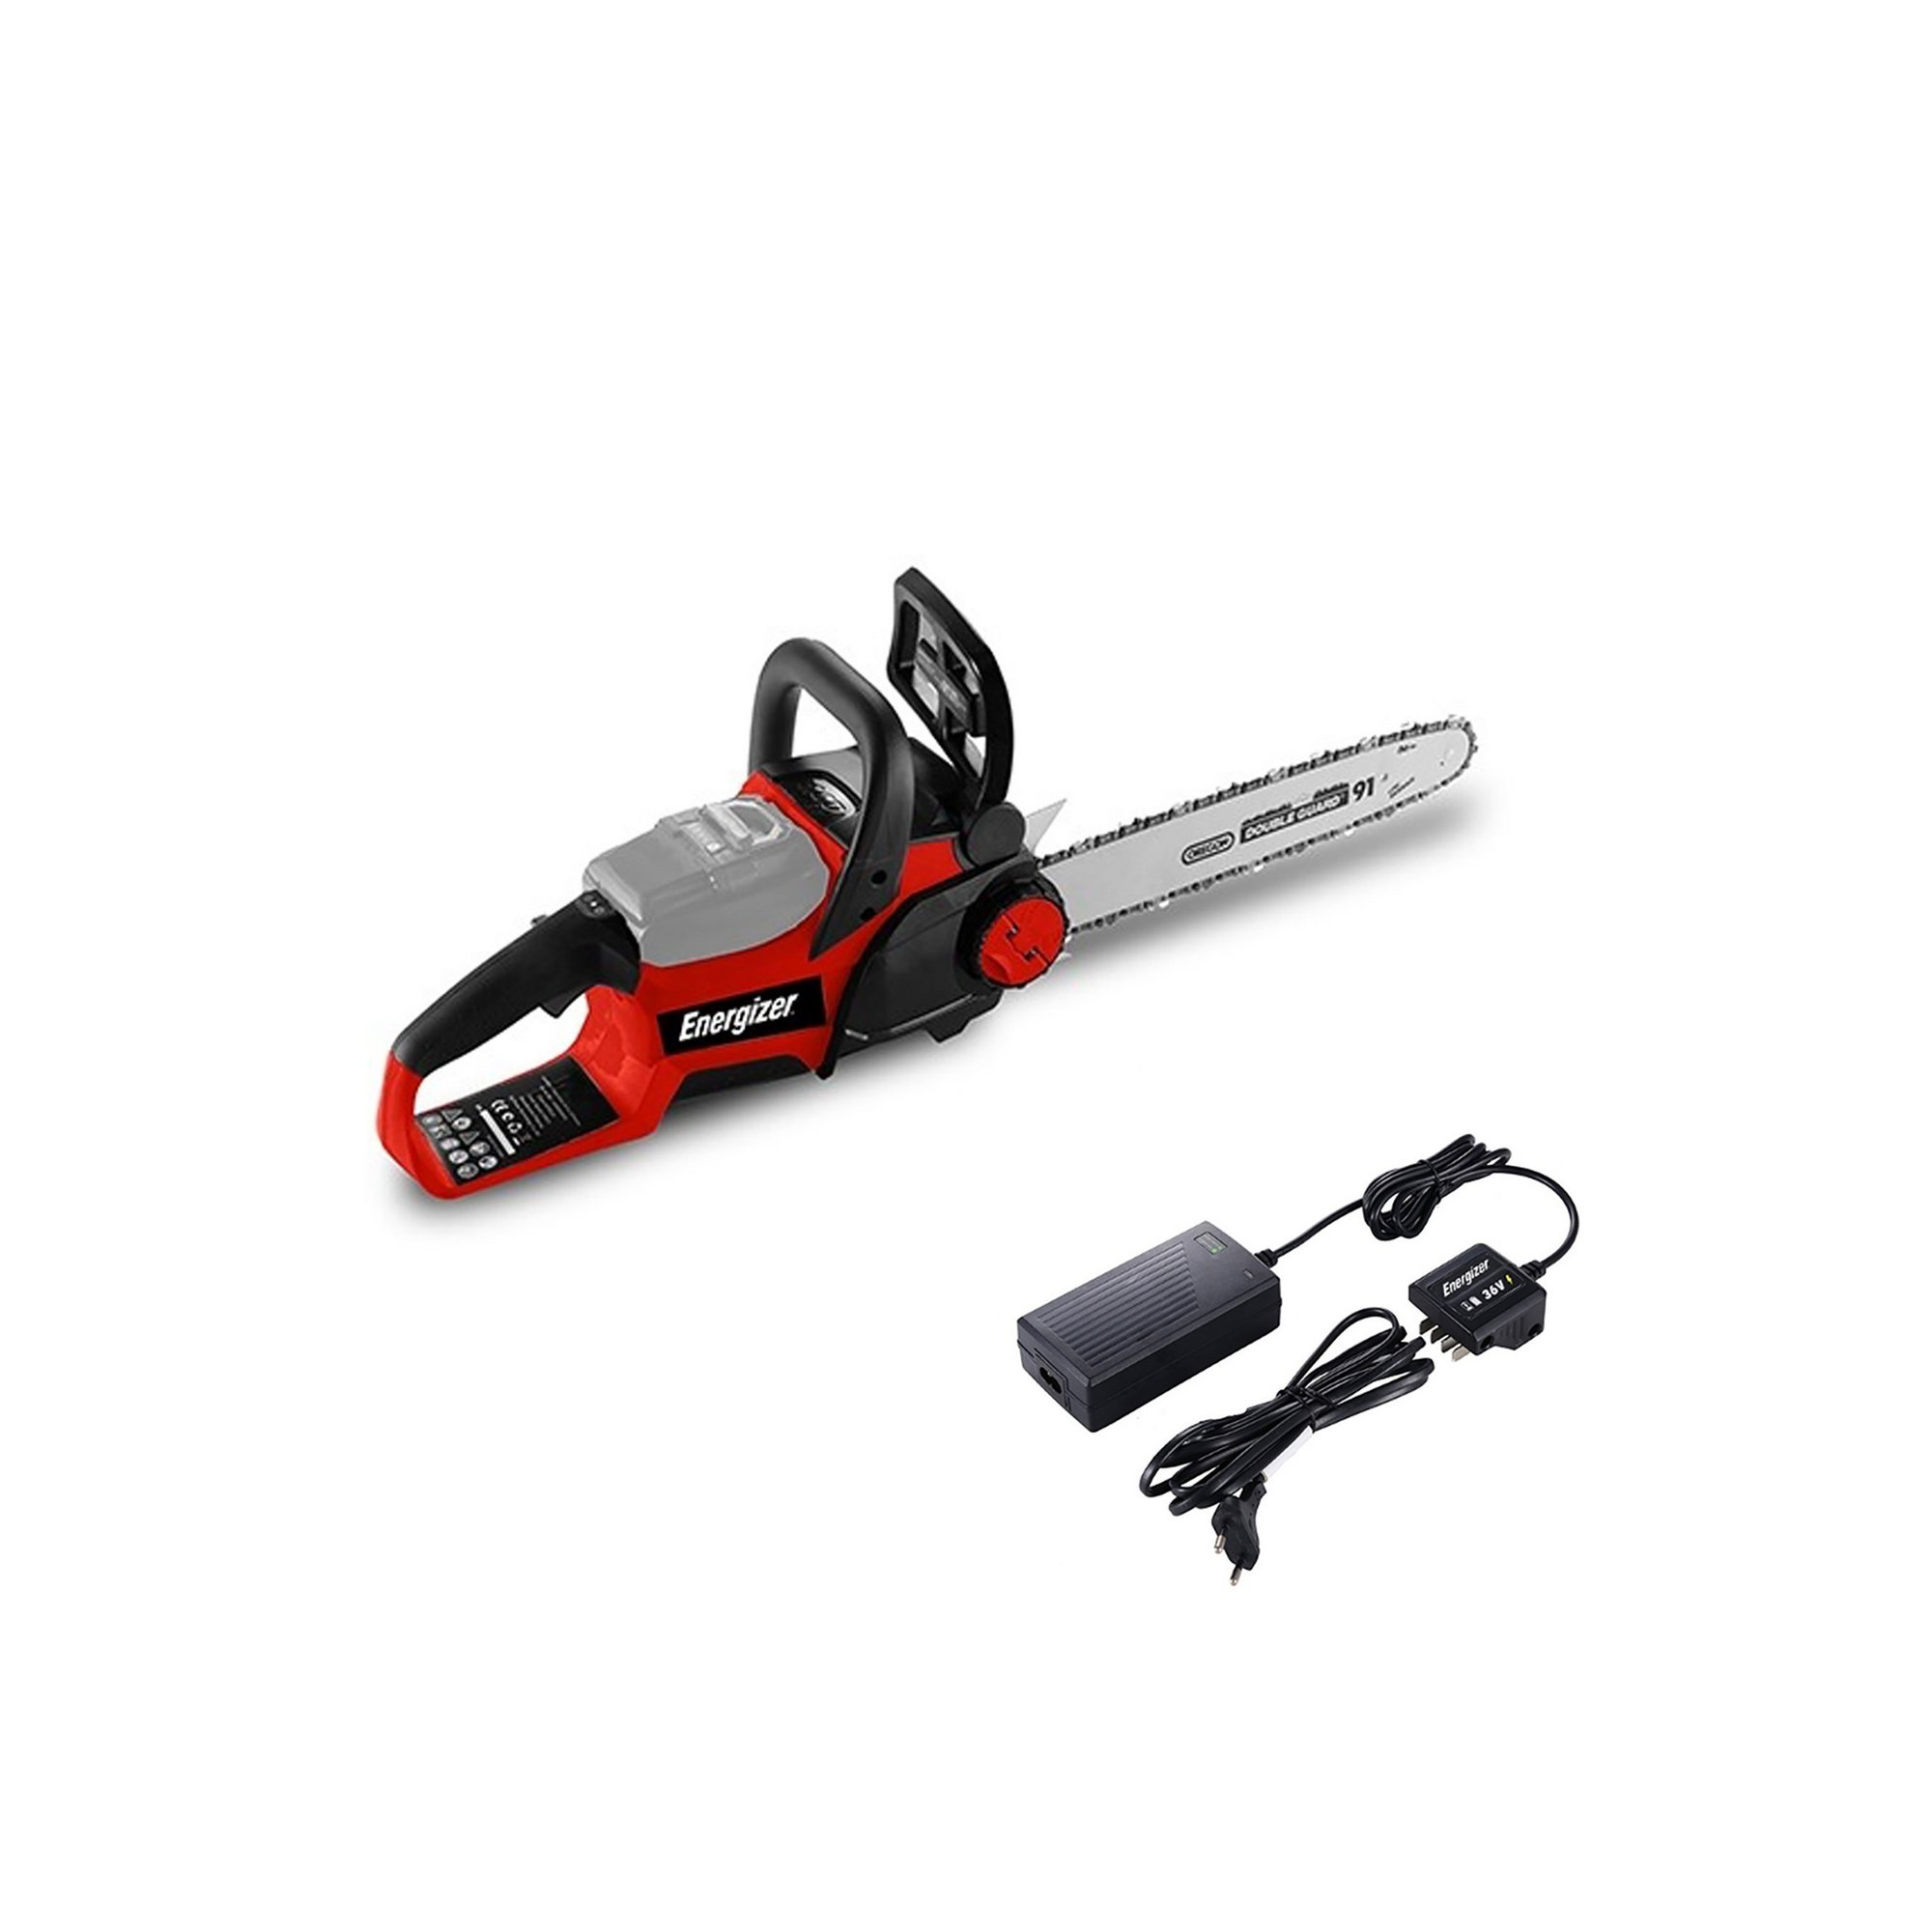 Image of Energizer Cordless Chainsaw